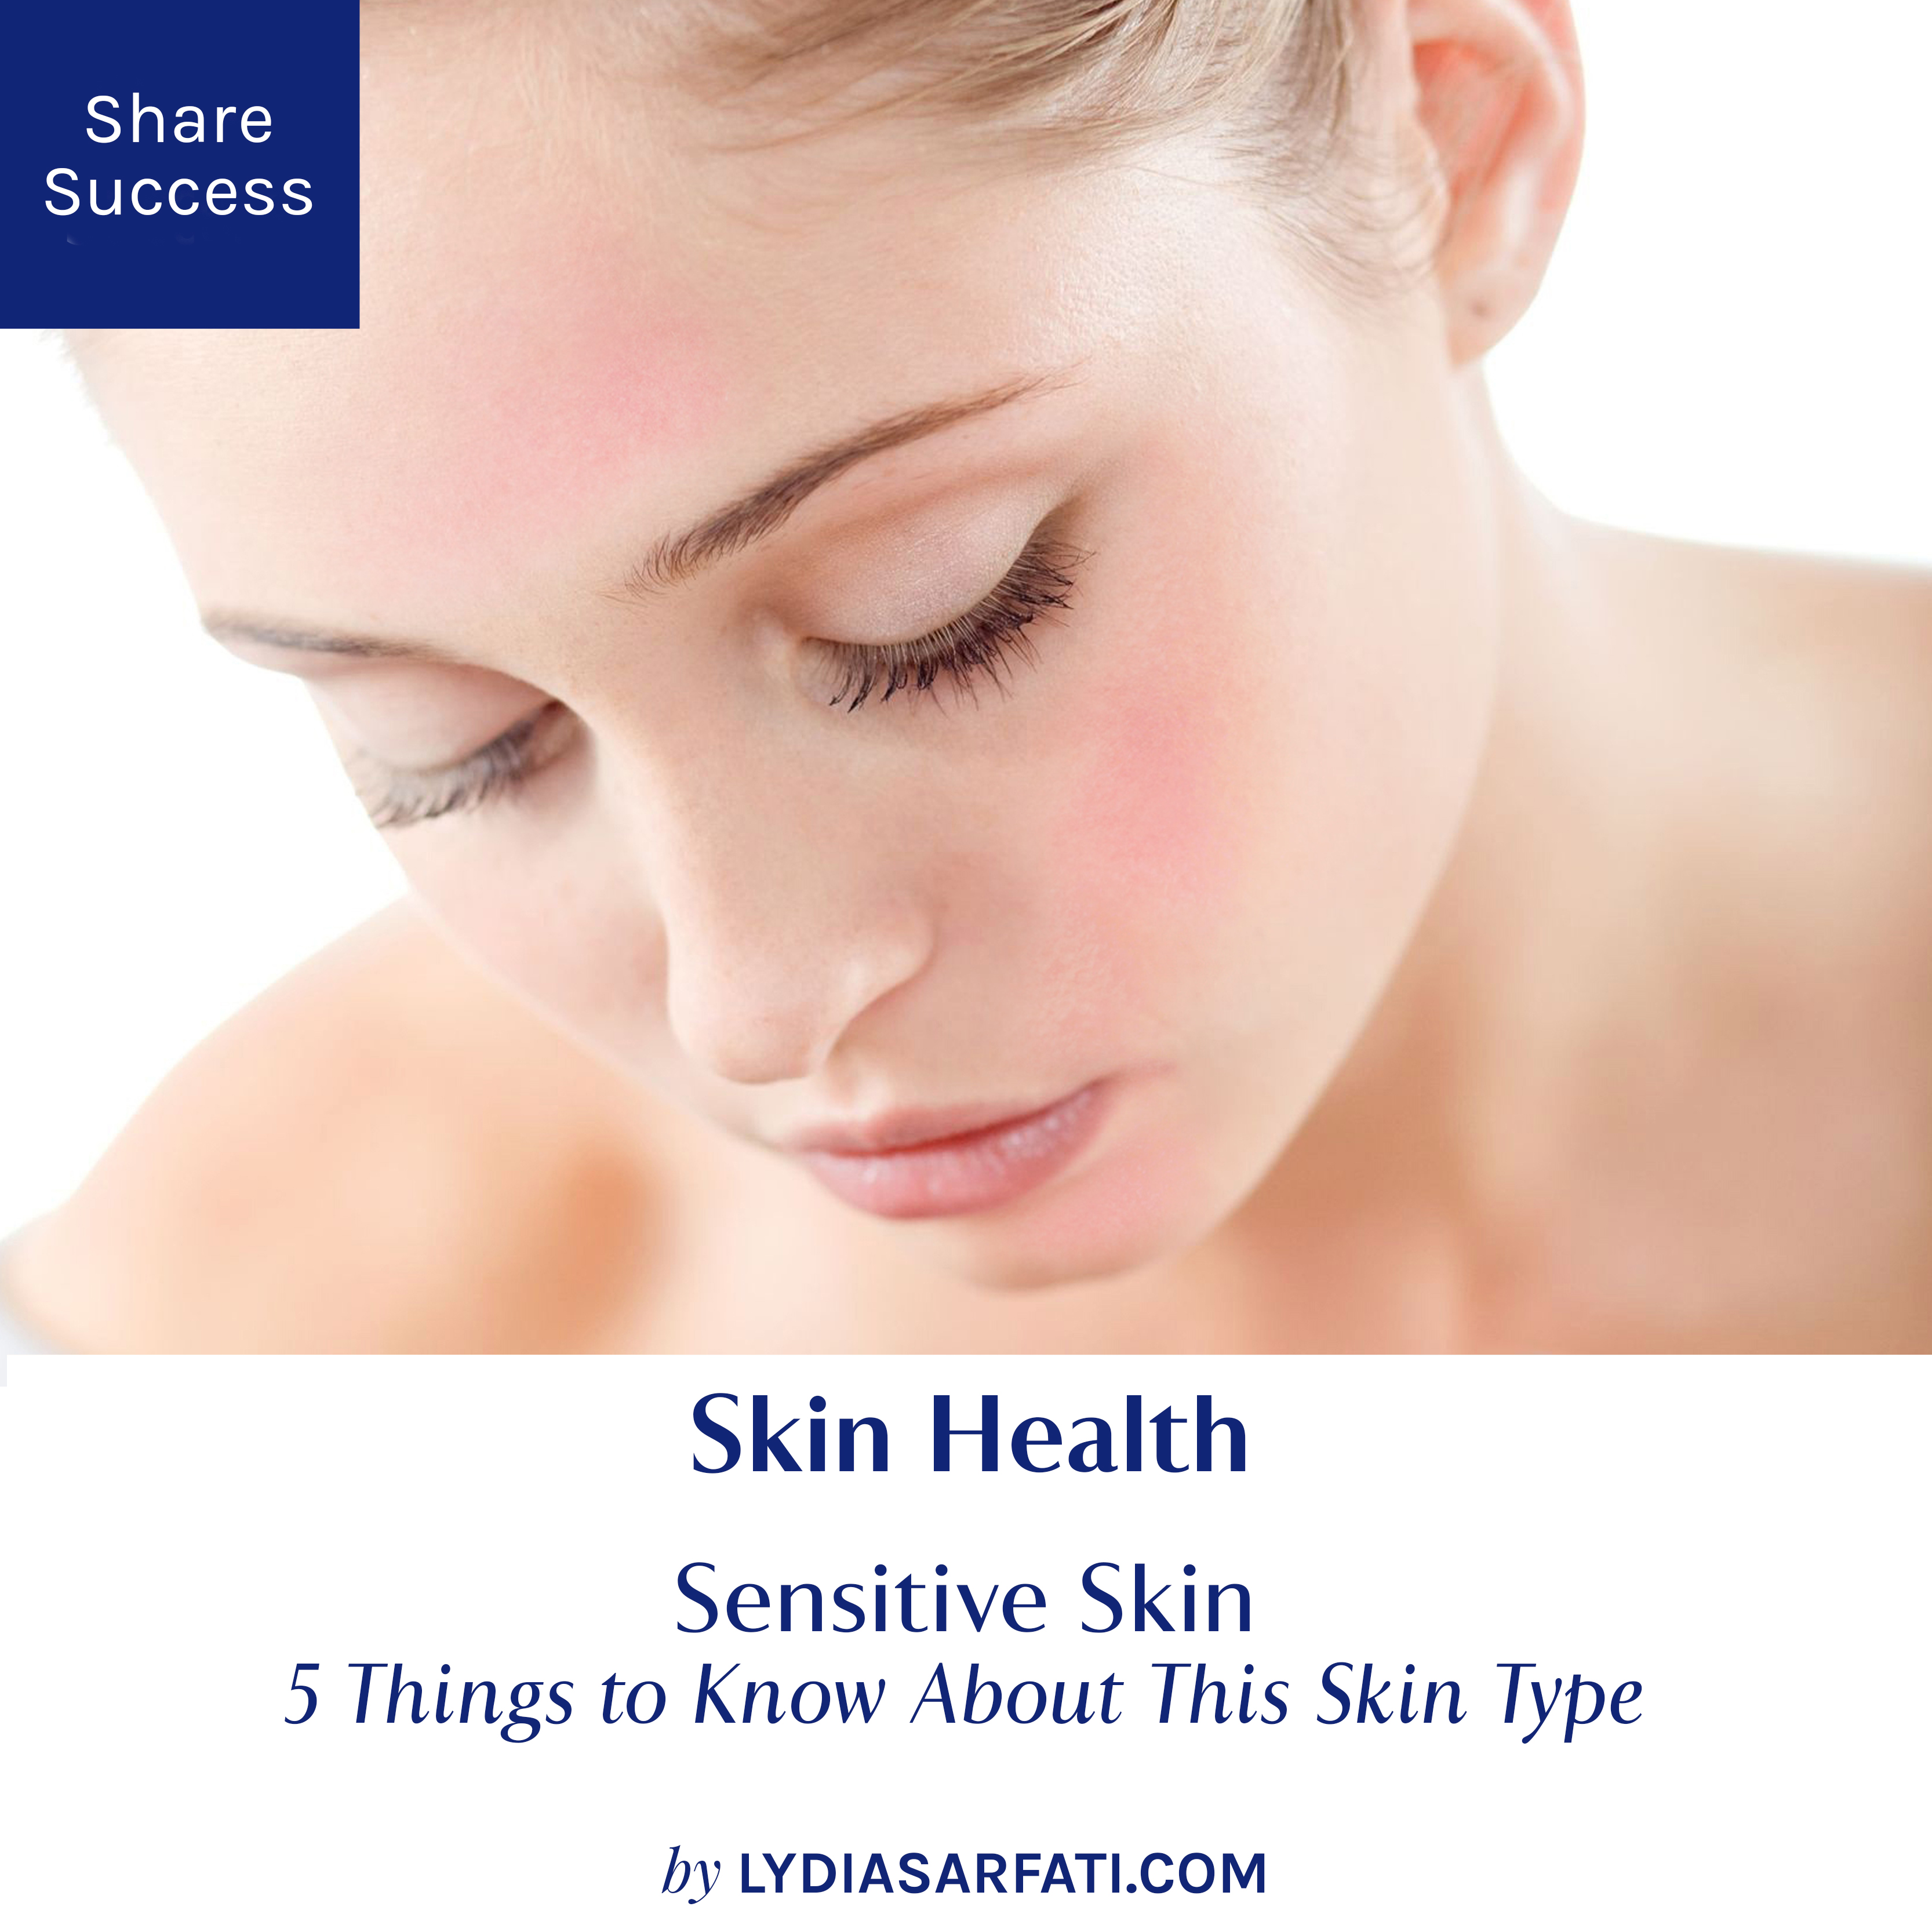 Sensitive Skin: Sensitive Skin: 5 Things To Know About This Skin Type